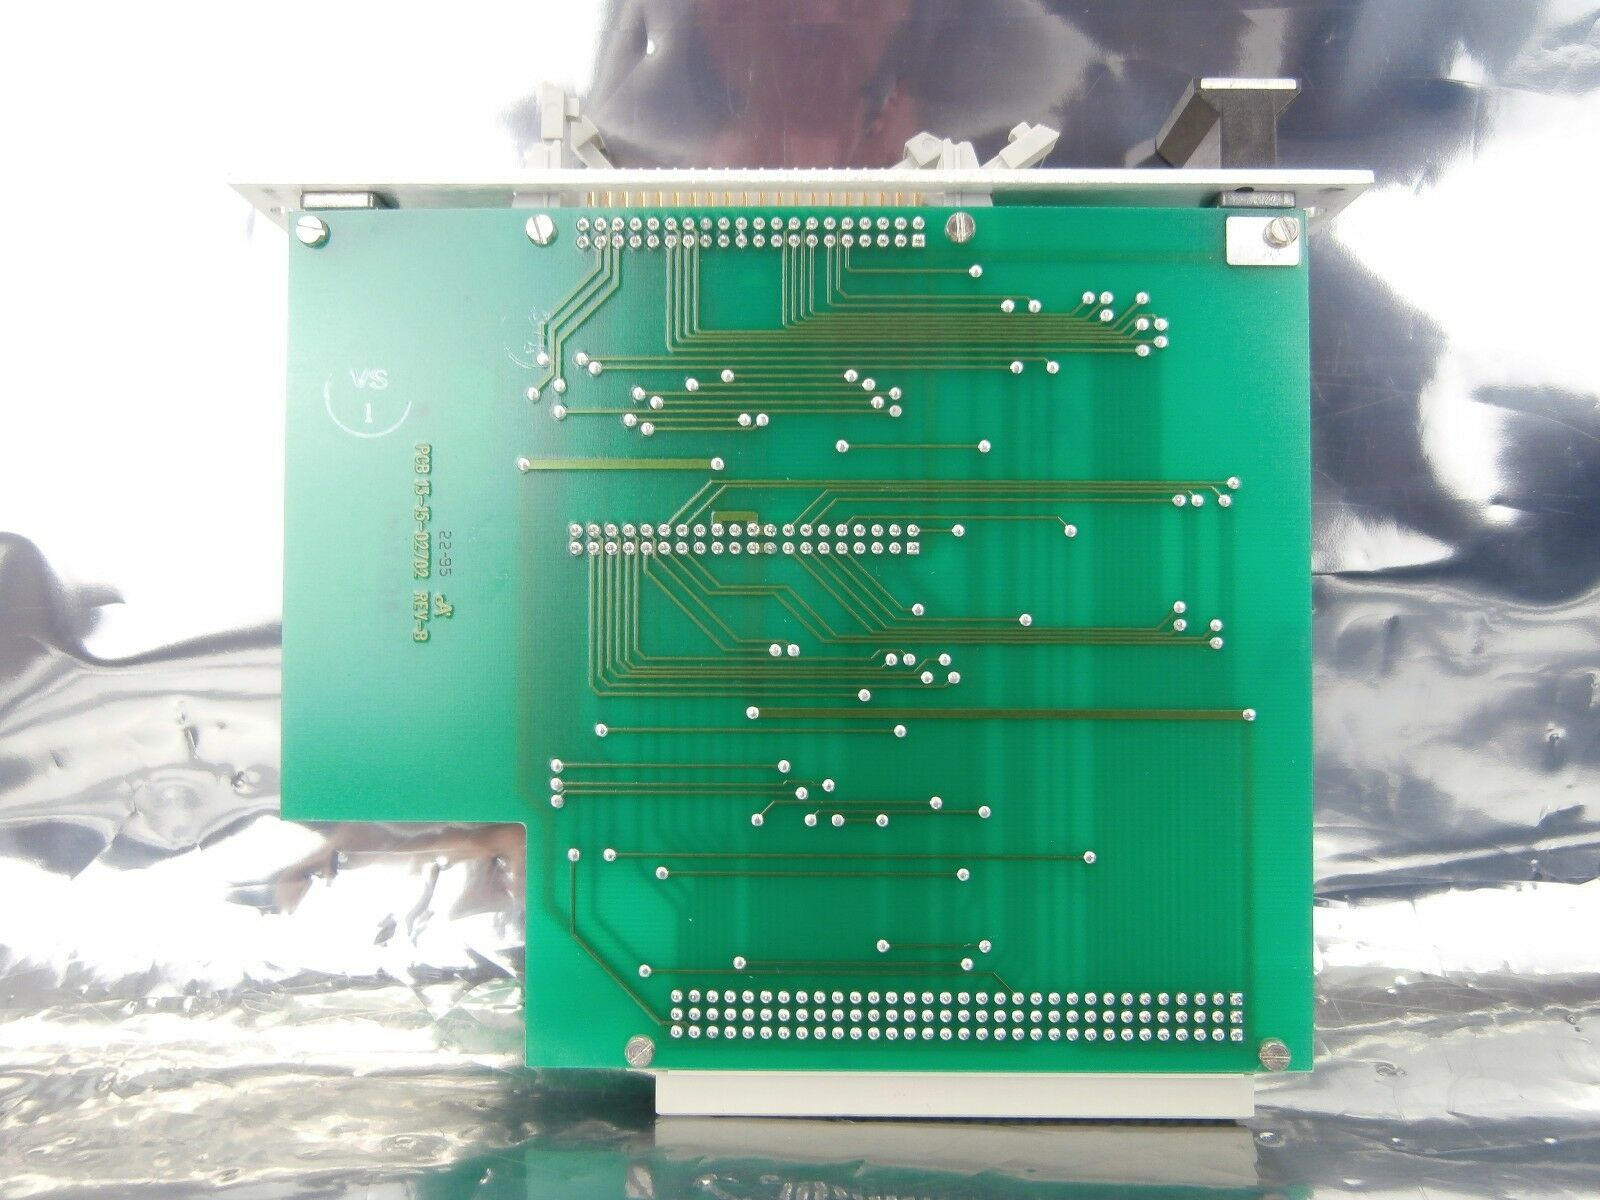 Ultratech Stepper 03-15-02702 Transition Step MOT/COOLER ASH PCB Card Titan Used